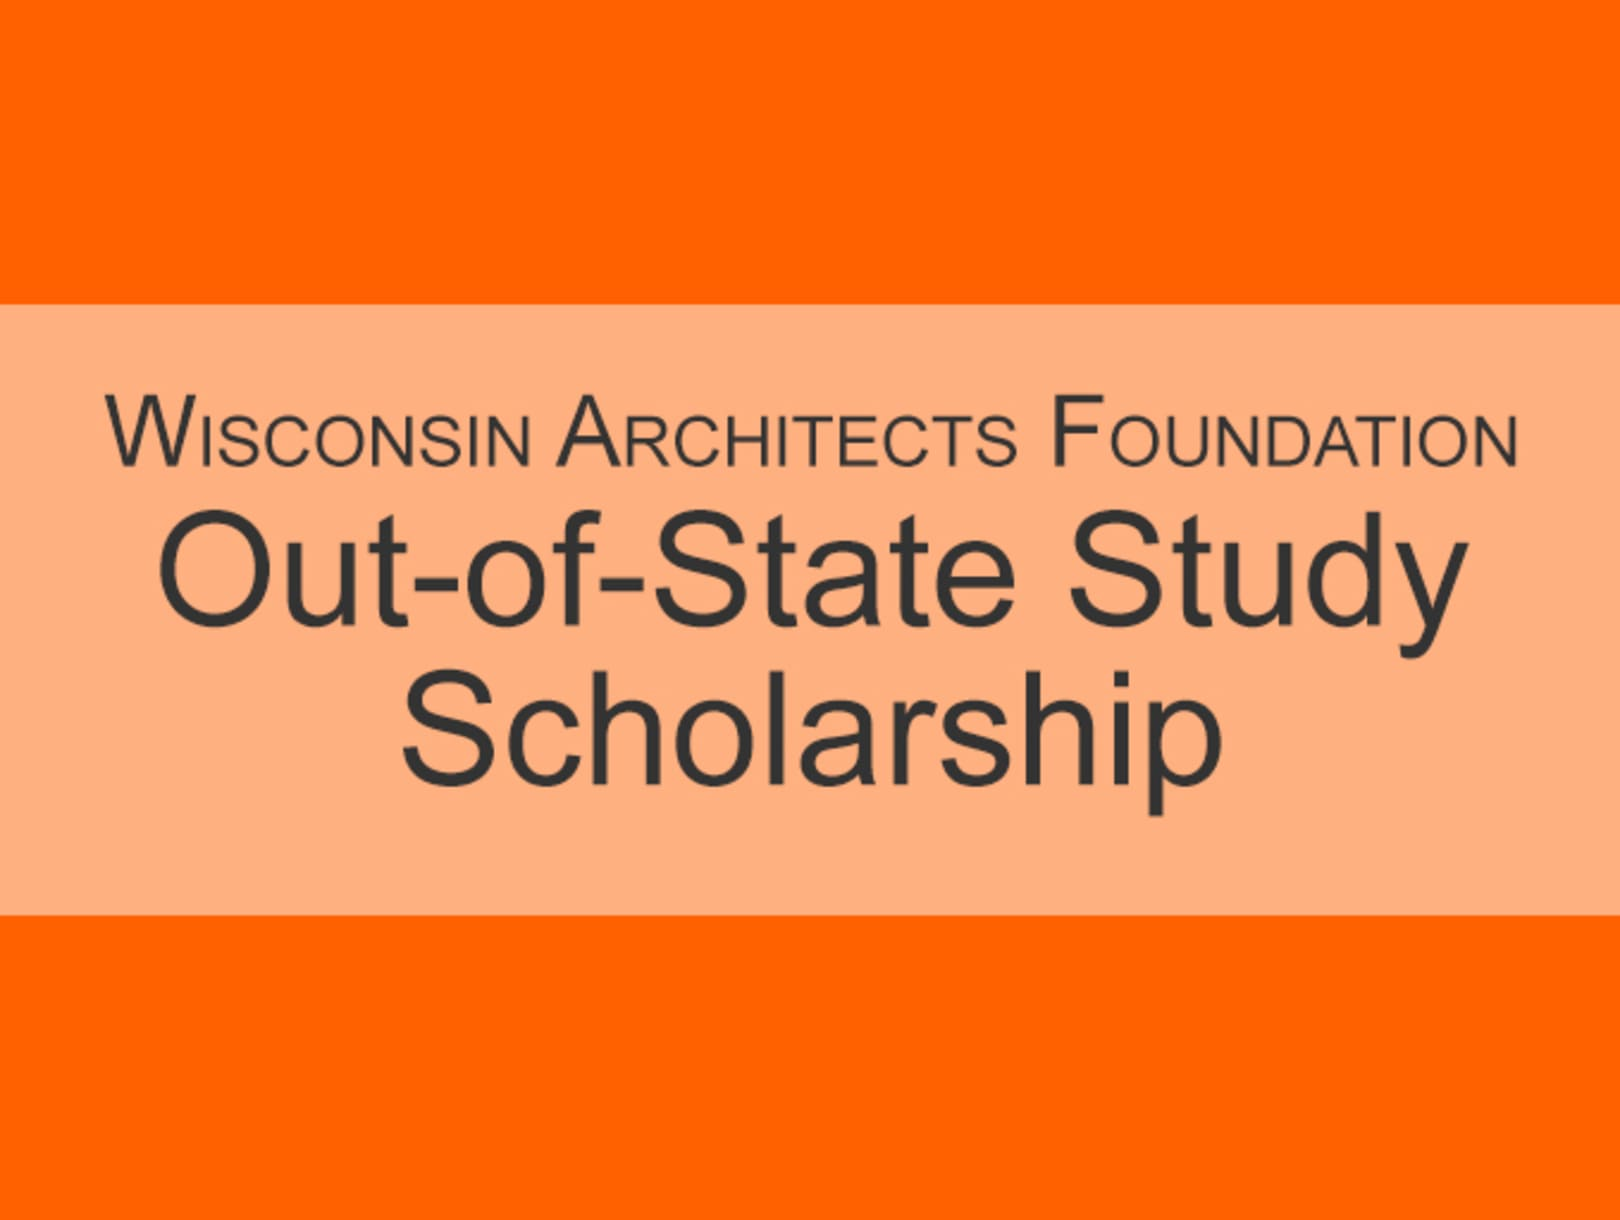 WAF Out-of-State Study Scholarship